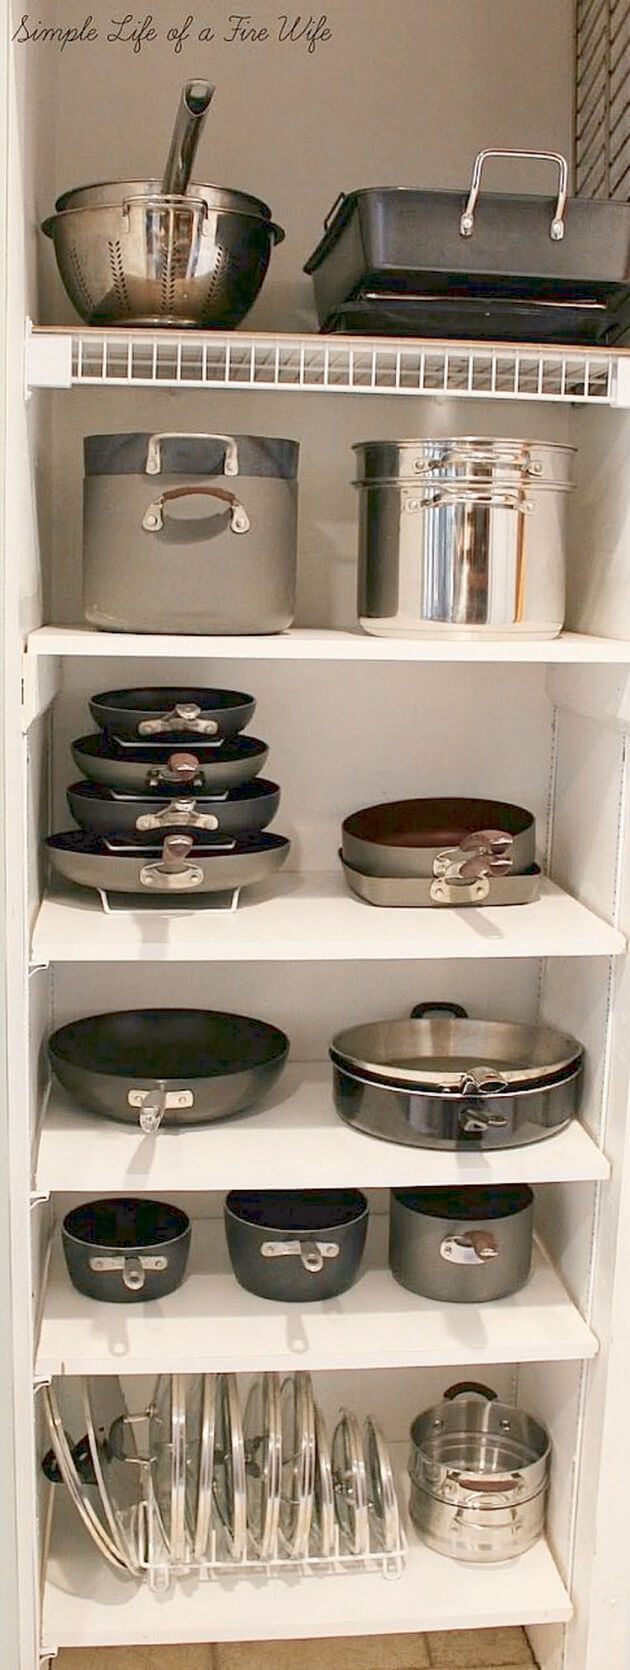 Kitchen Organization Ideas Best 25 Kitchen Cabinet Organization Ideas On Pinterest  Kitchen .